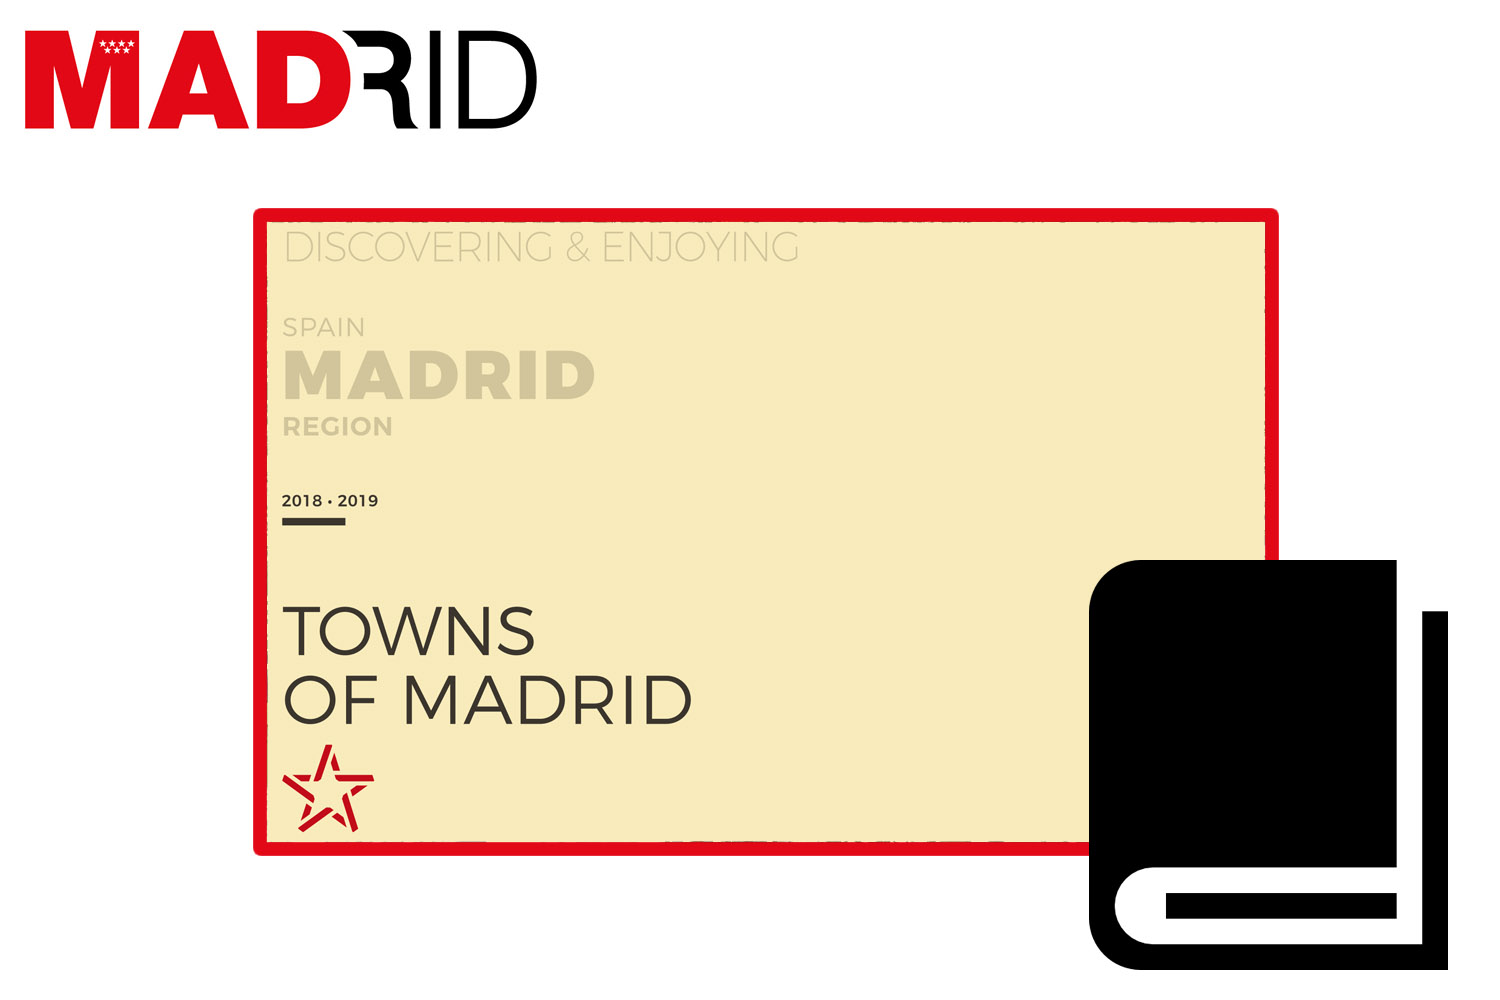 Towns of Madrid